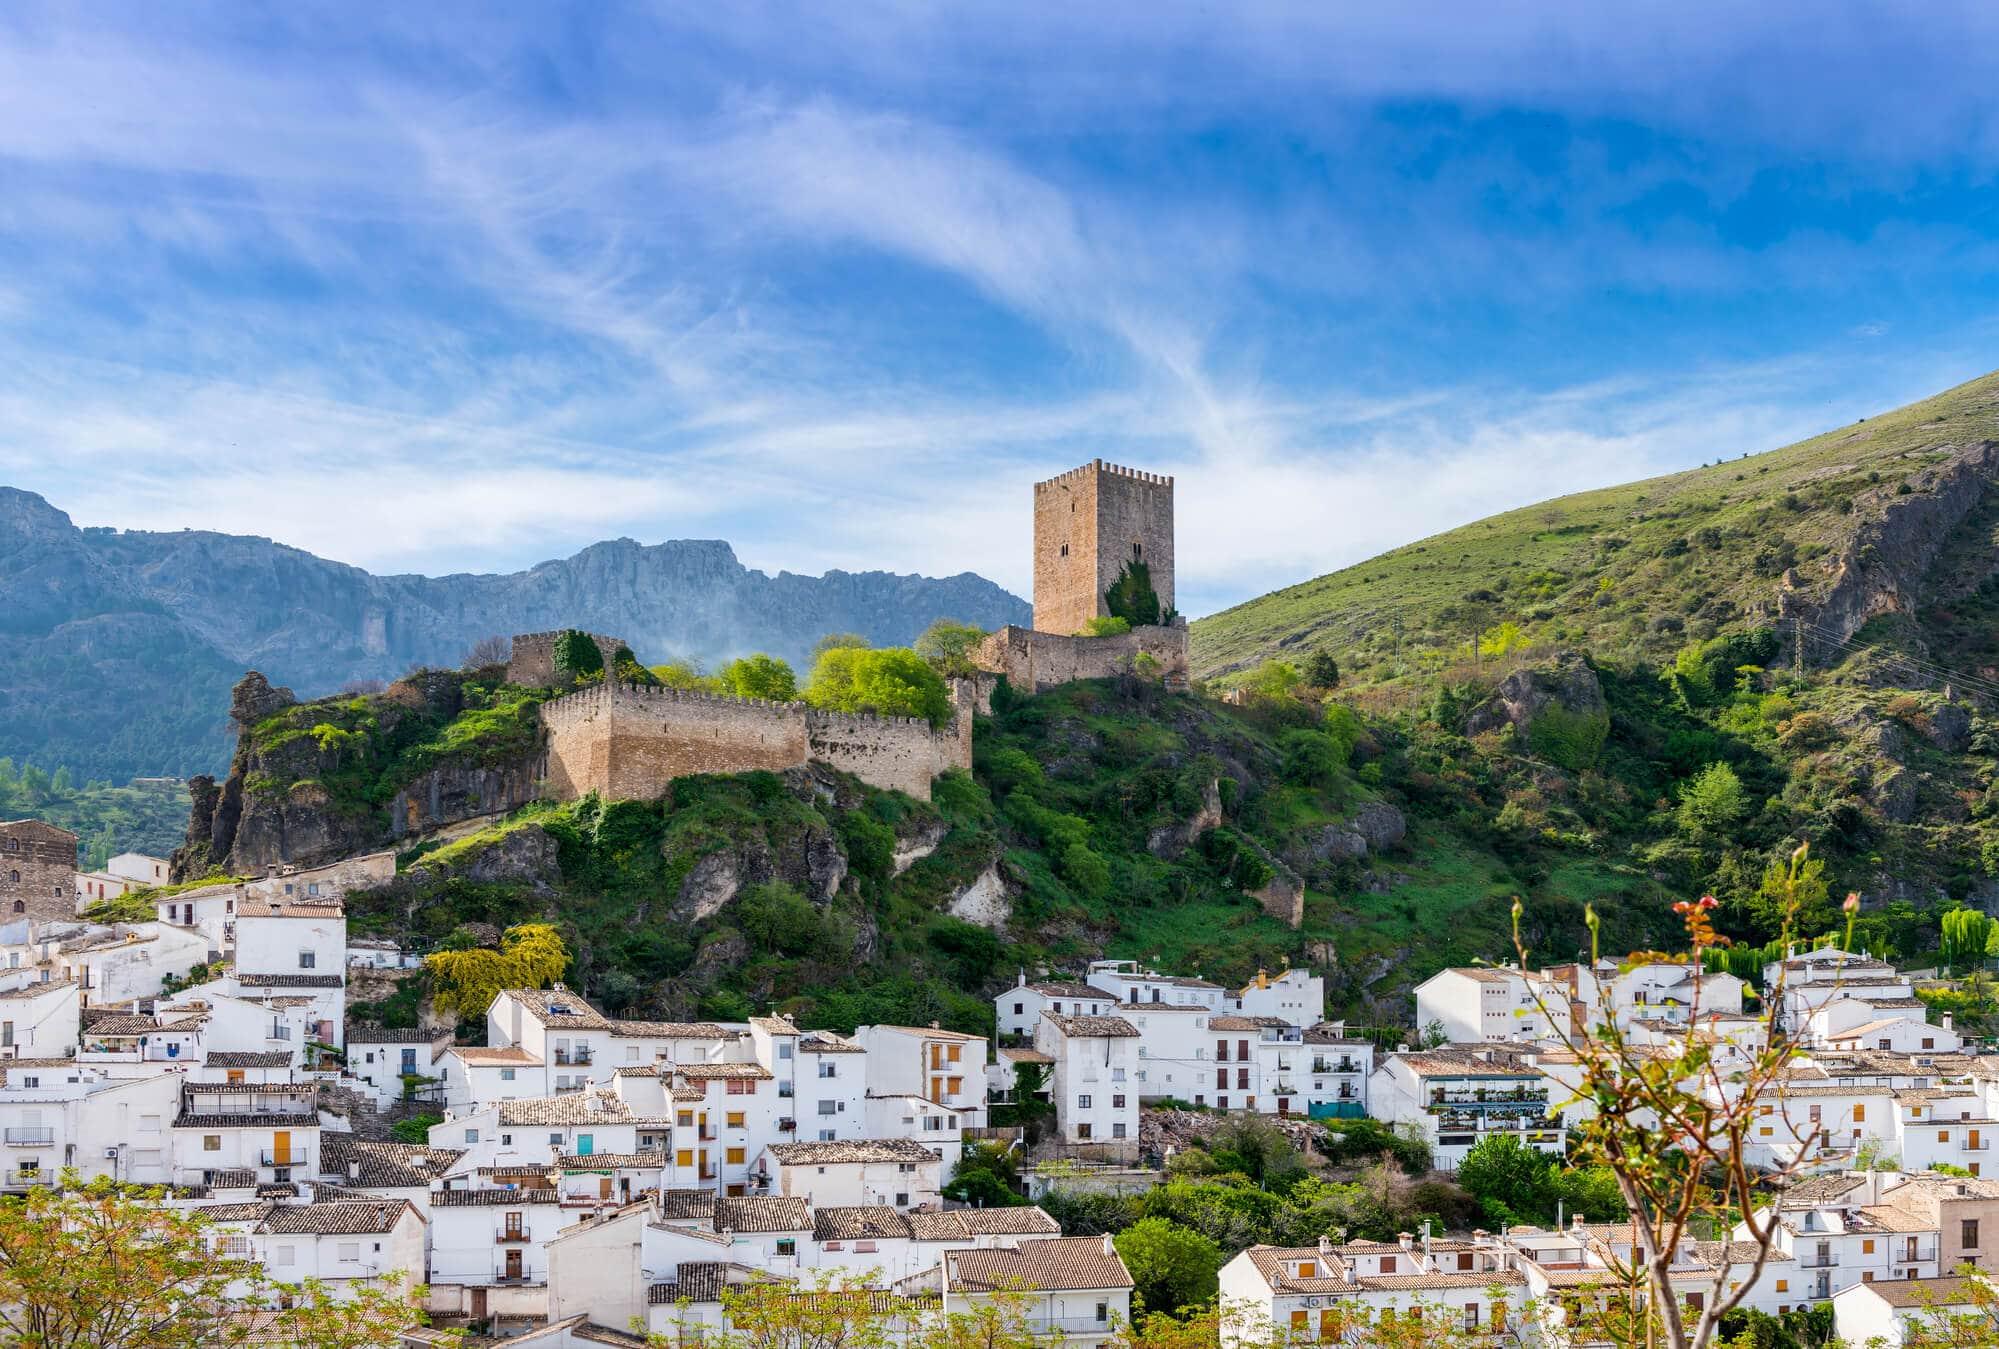 An old fortress towering over the white town of Cazorla - One of Spain's true hidden gems